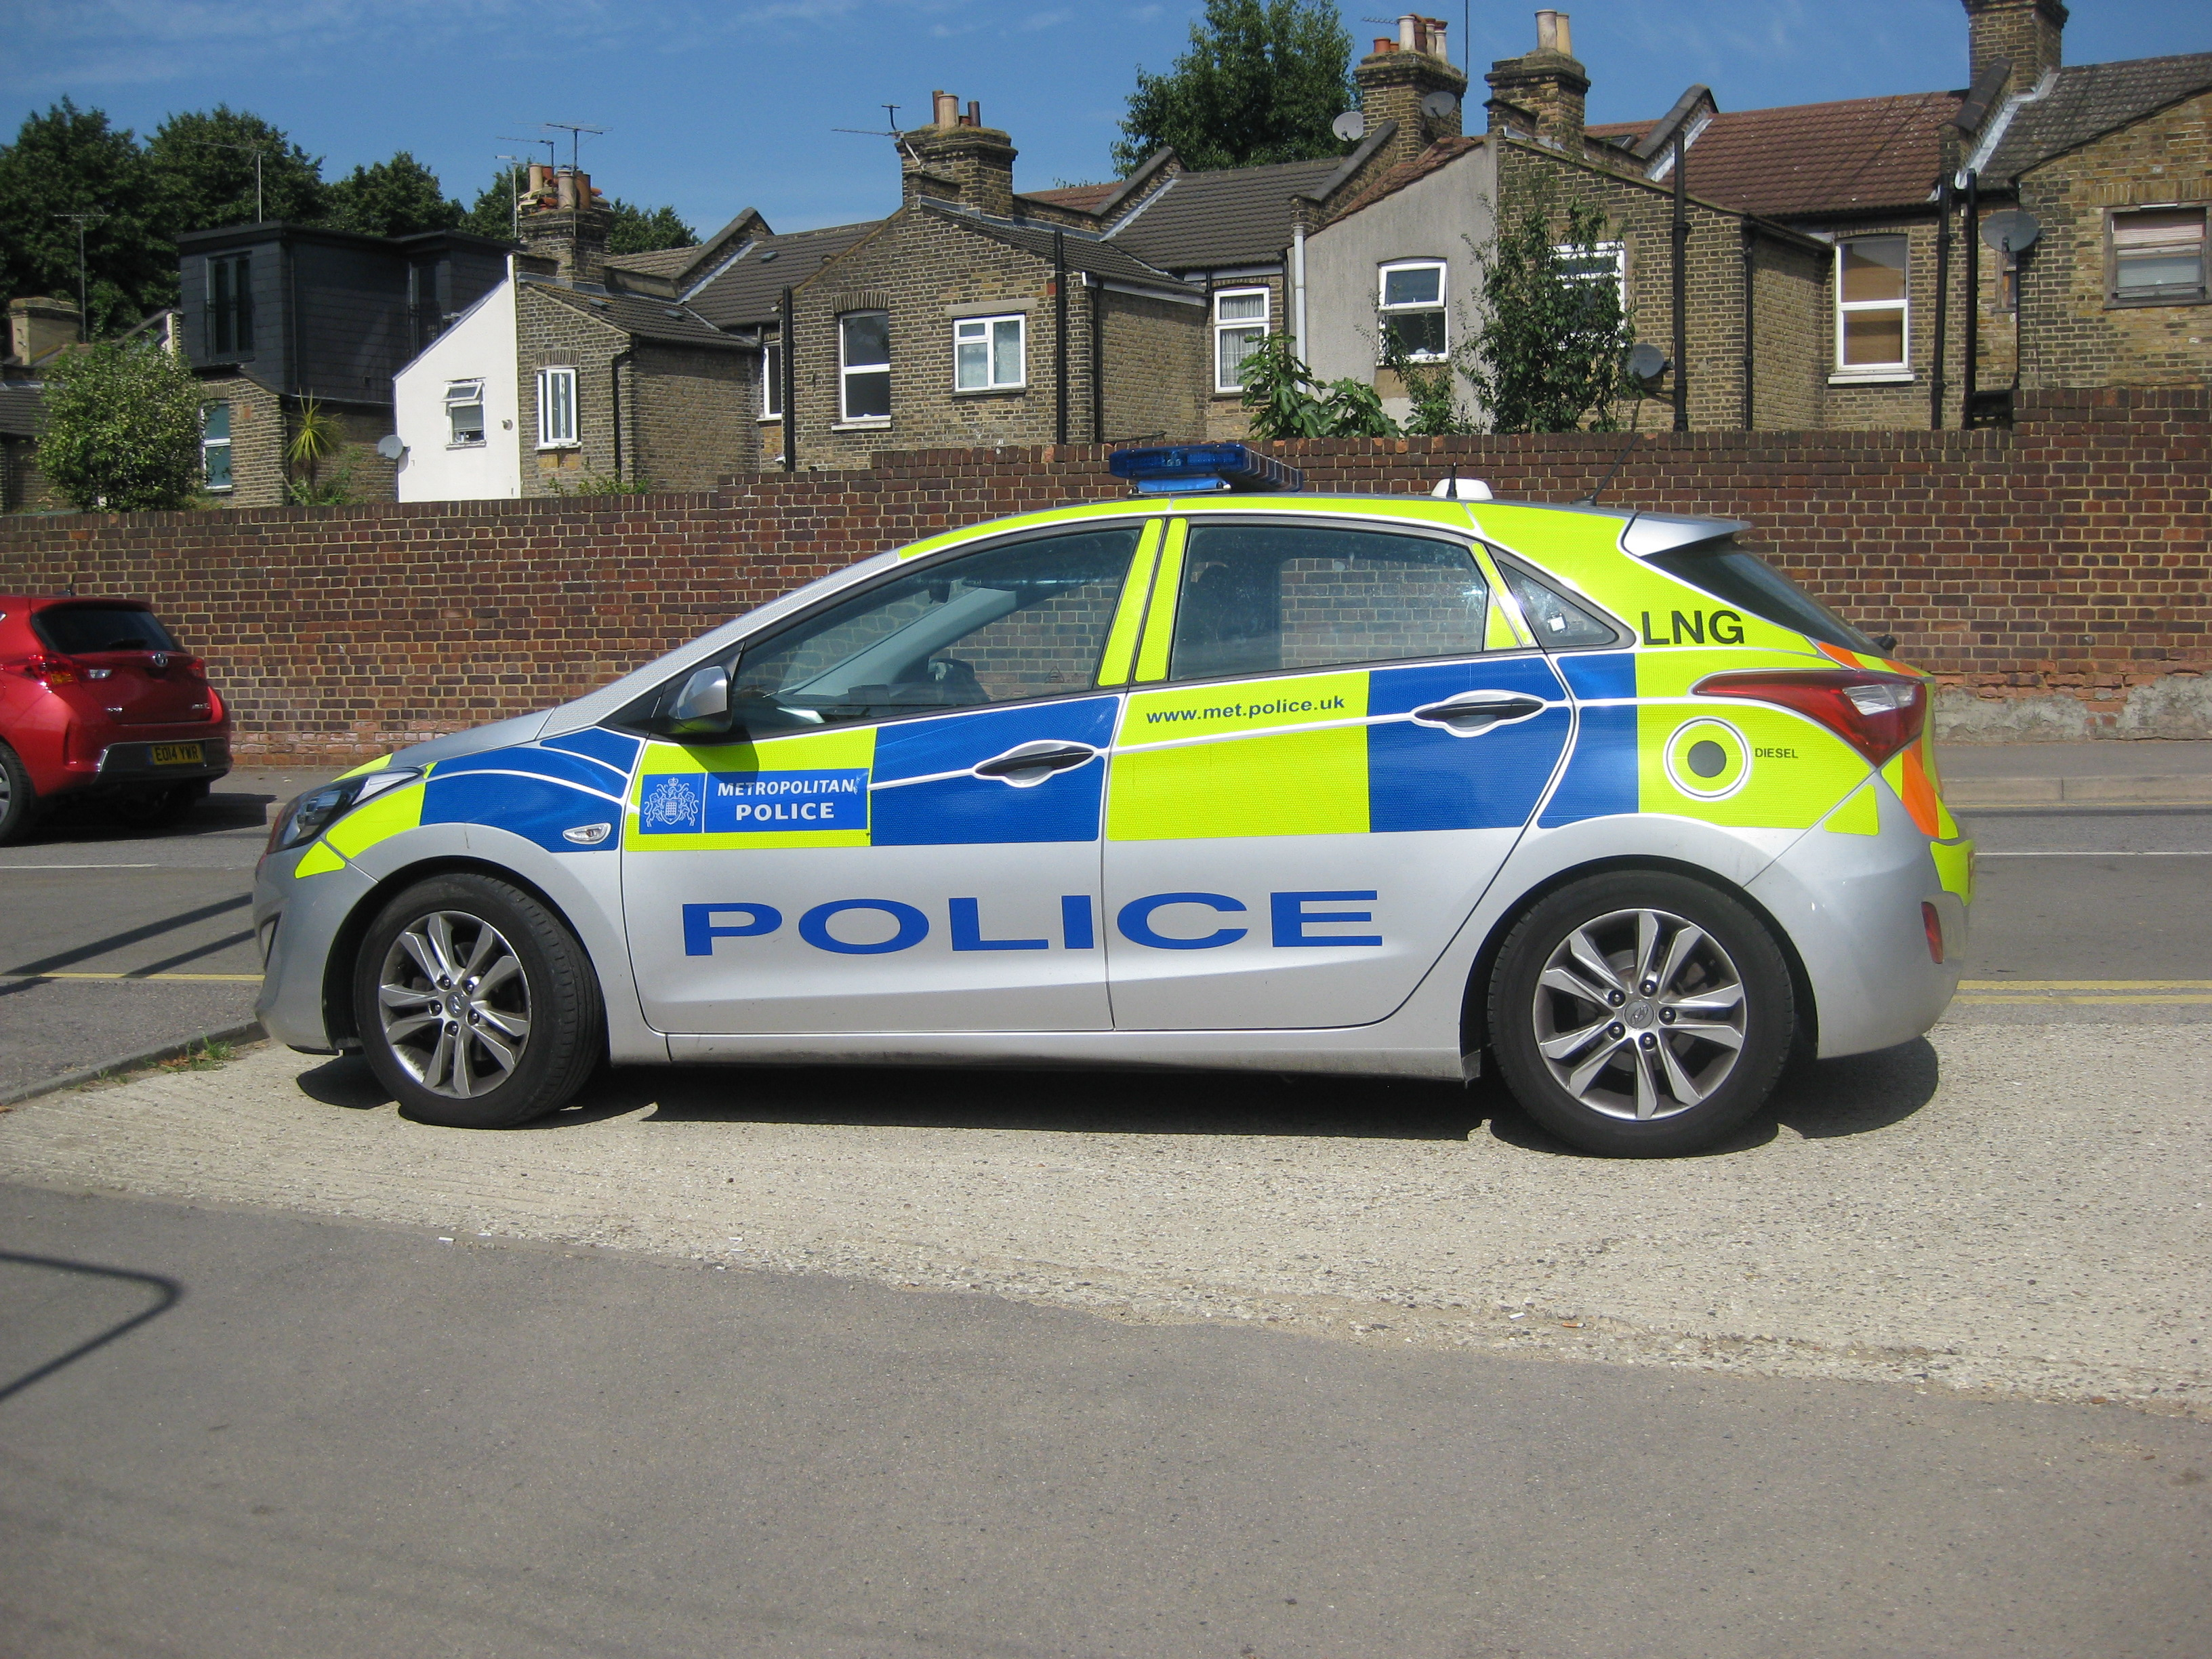 Met_Police_Hyundai_i30_incident_response_vehicle